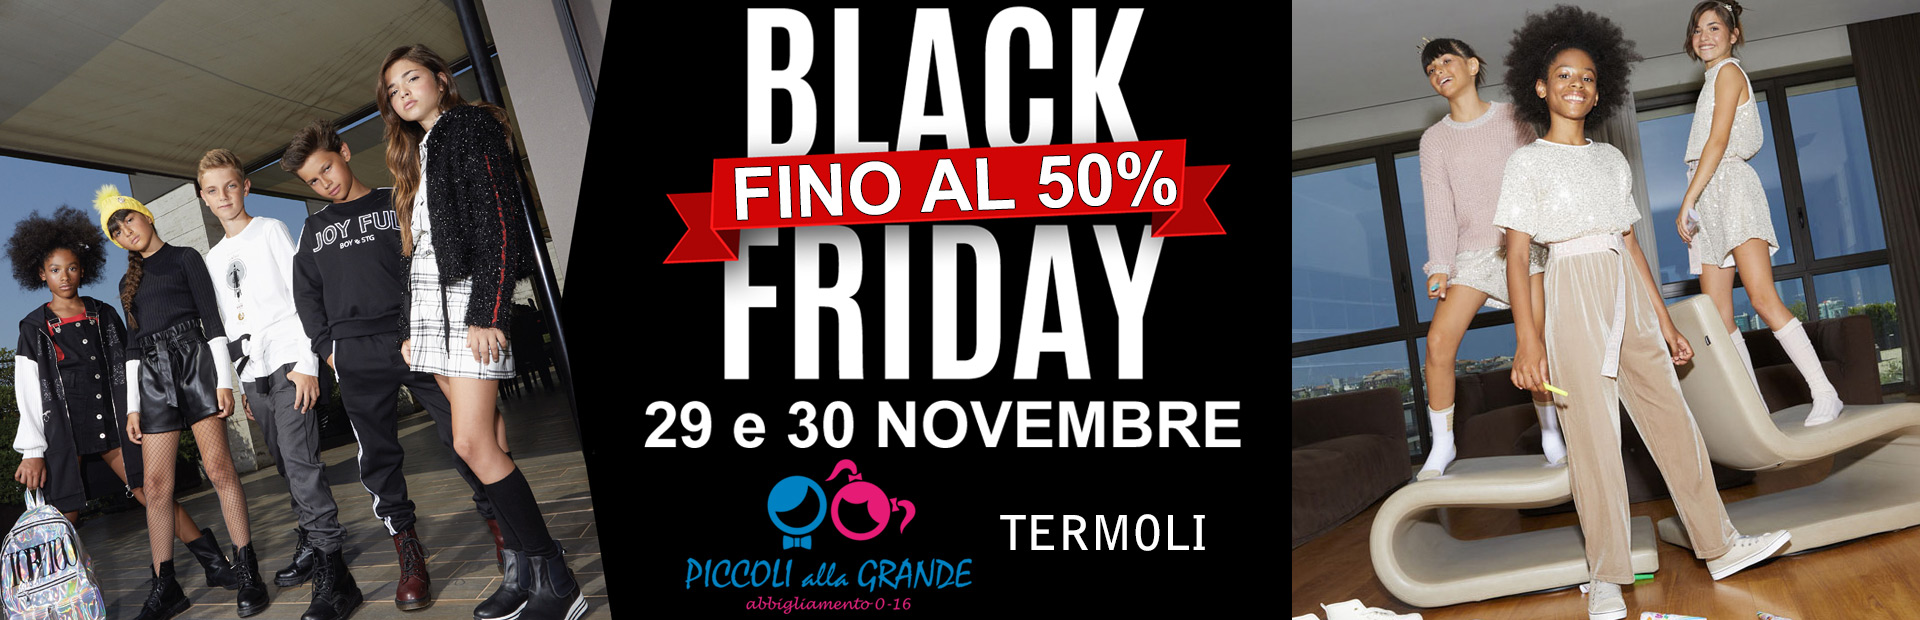 Black Friday 29 e 30 Novembre